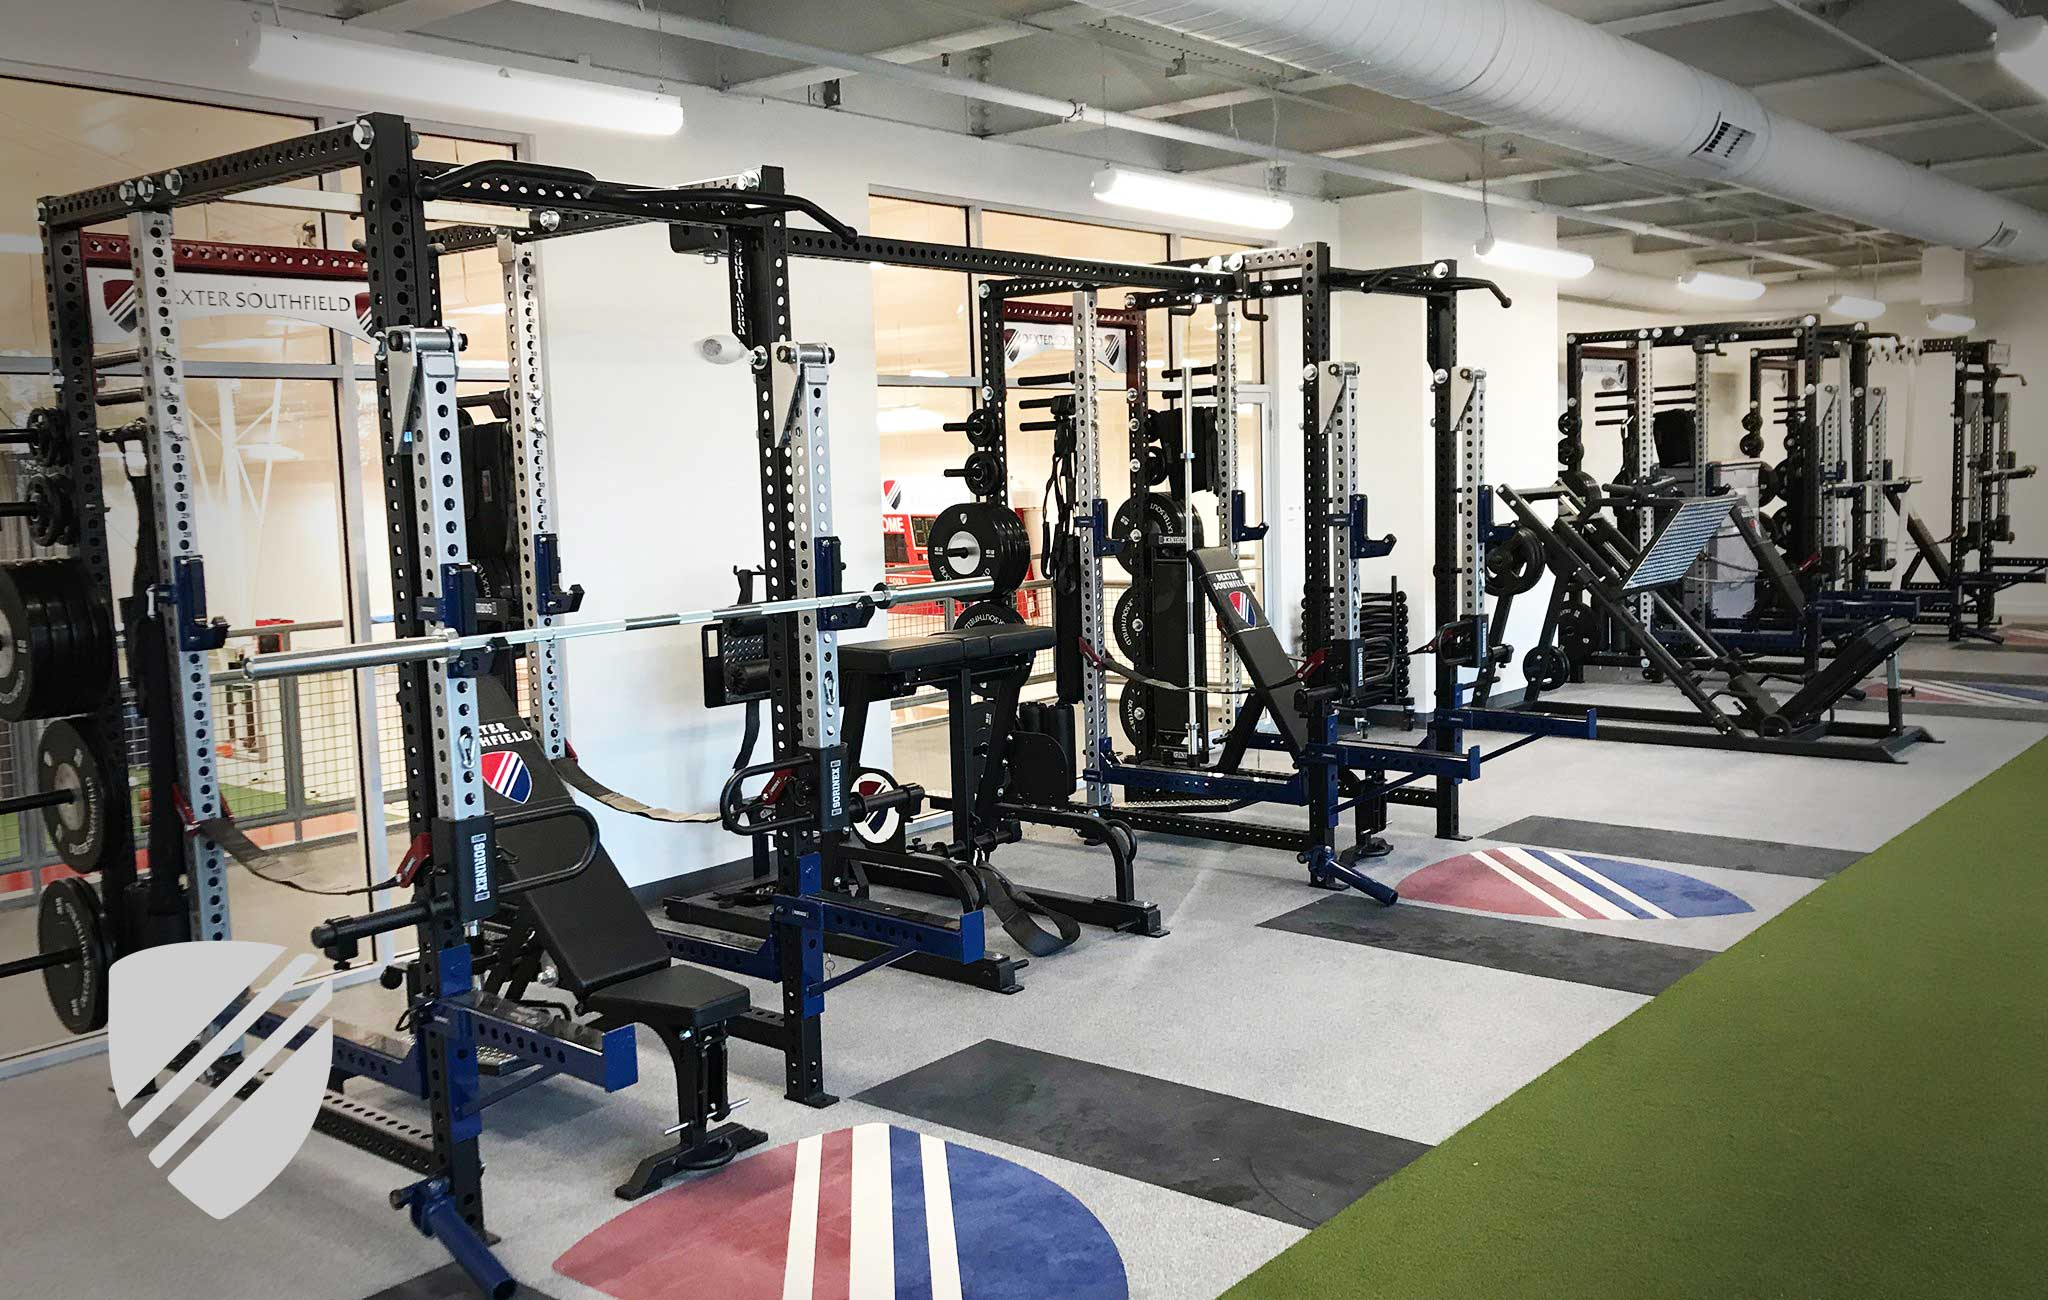 Dexter Southfield High School Sorinex strength and conditioning facility